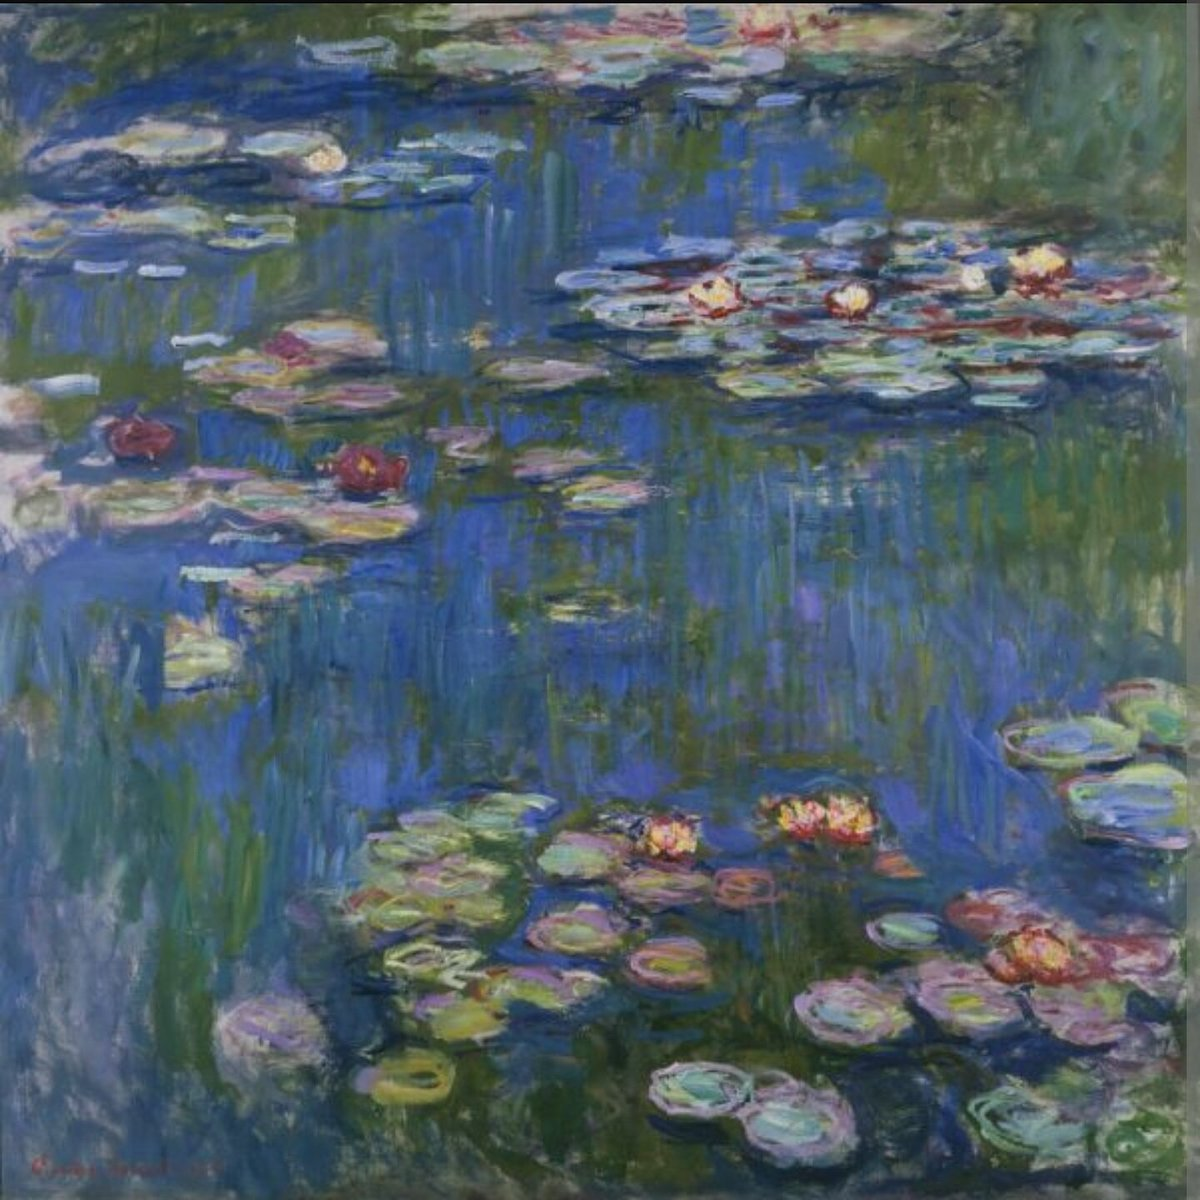 Water Lilies by Claude Monet